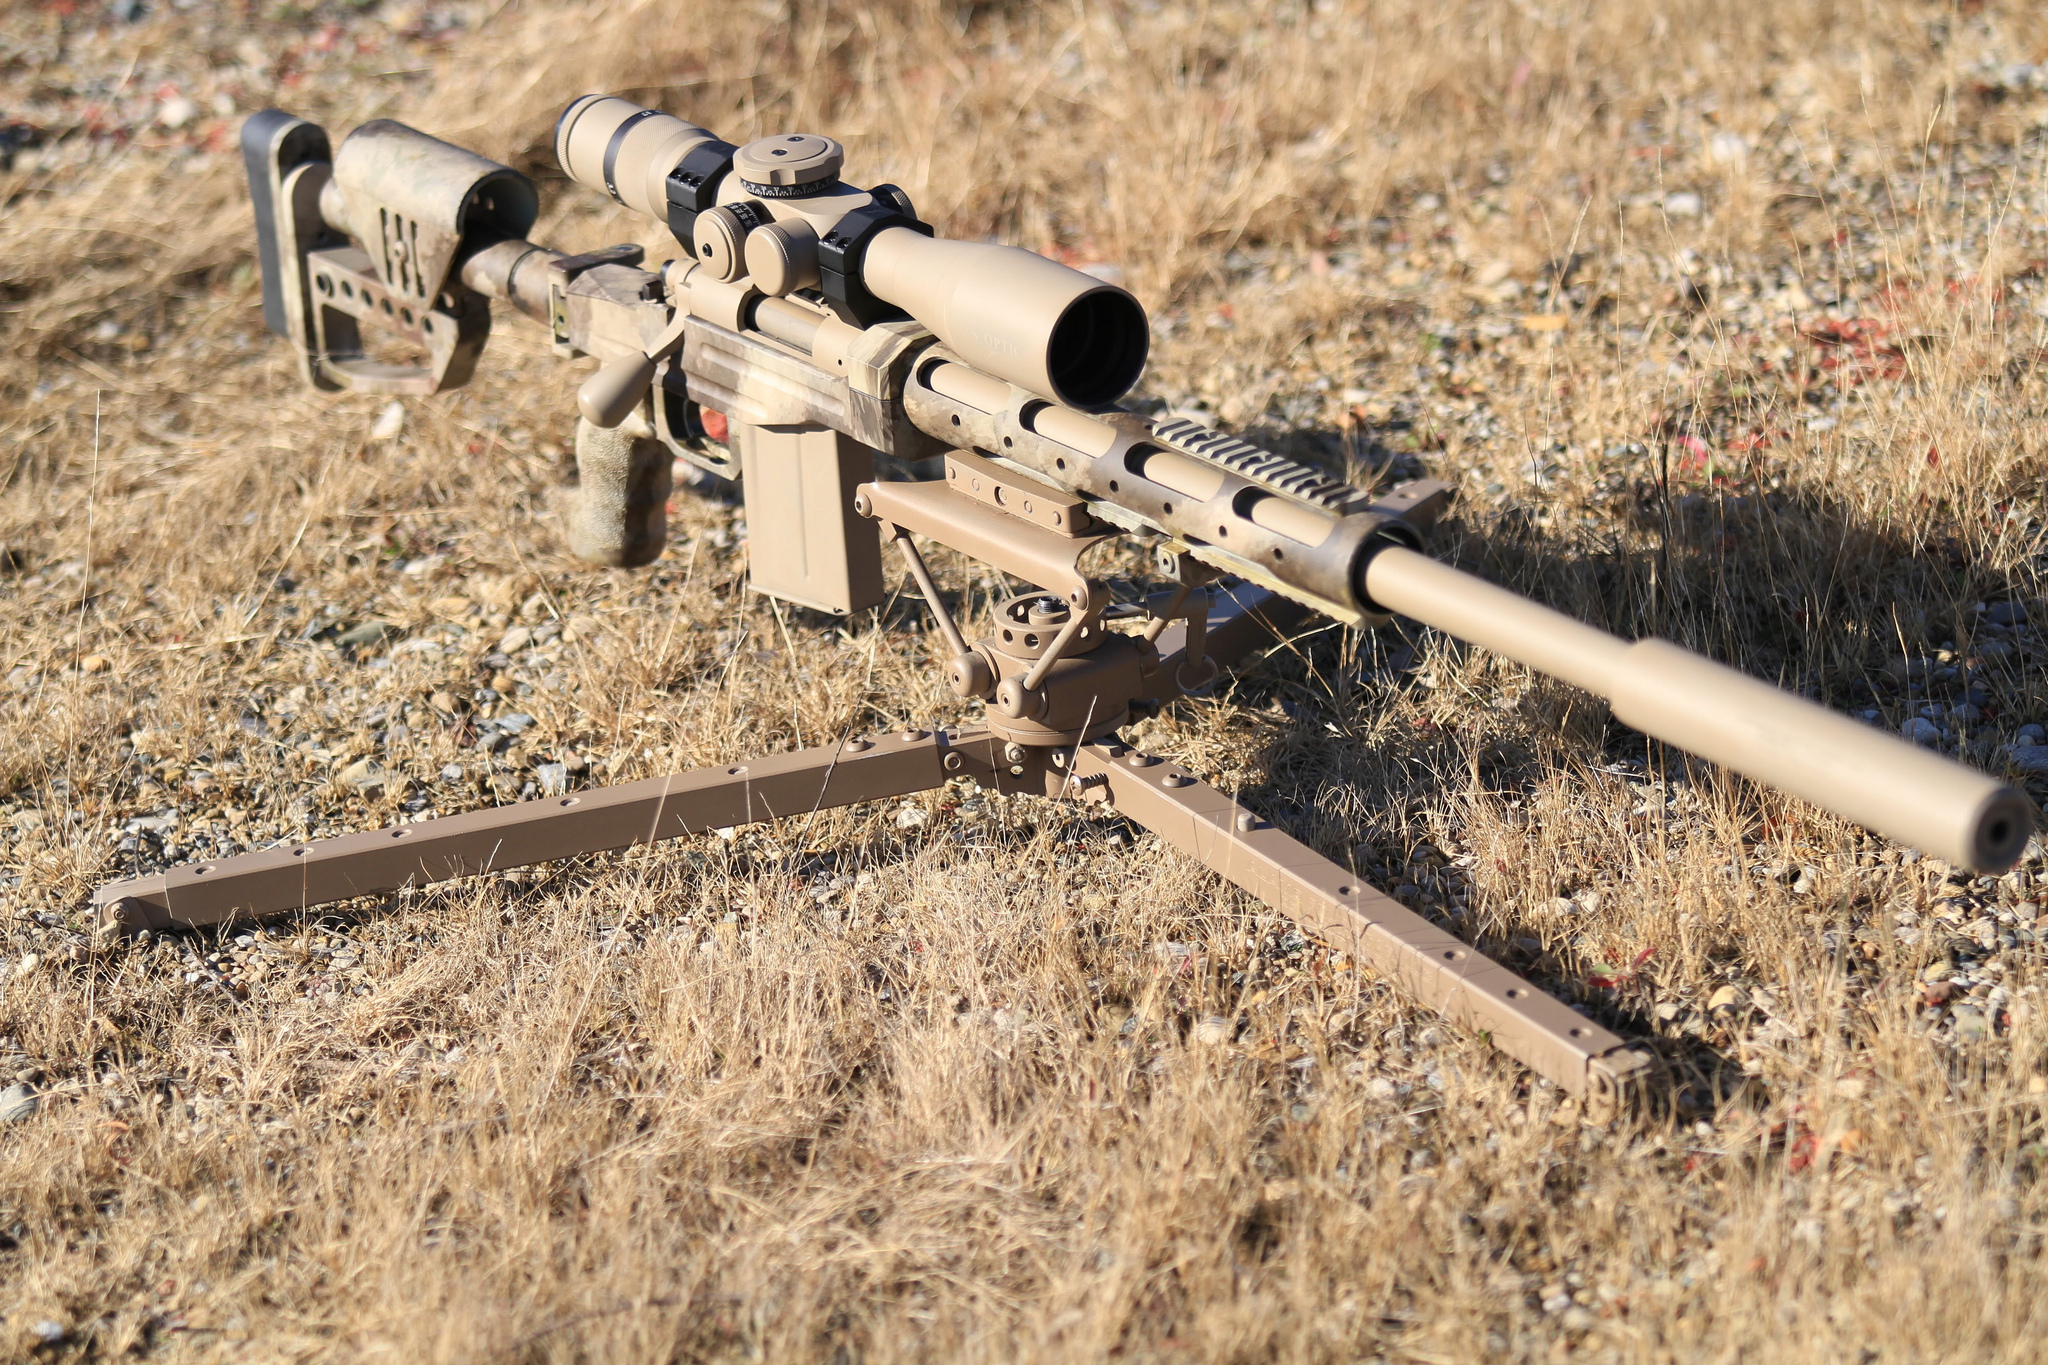 armys long serving sniper rifle - HD2048×1365